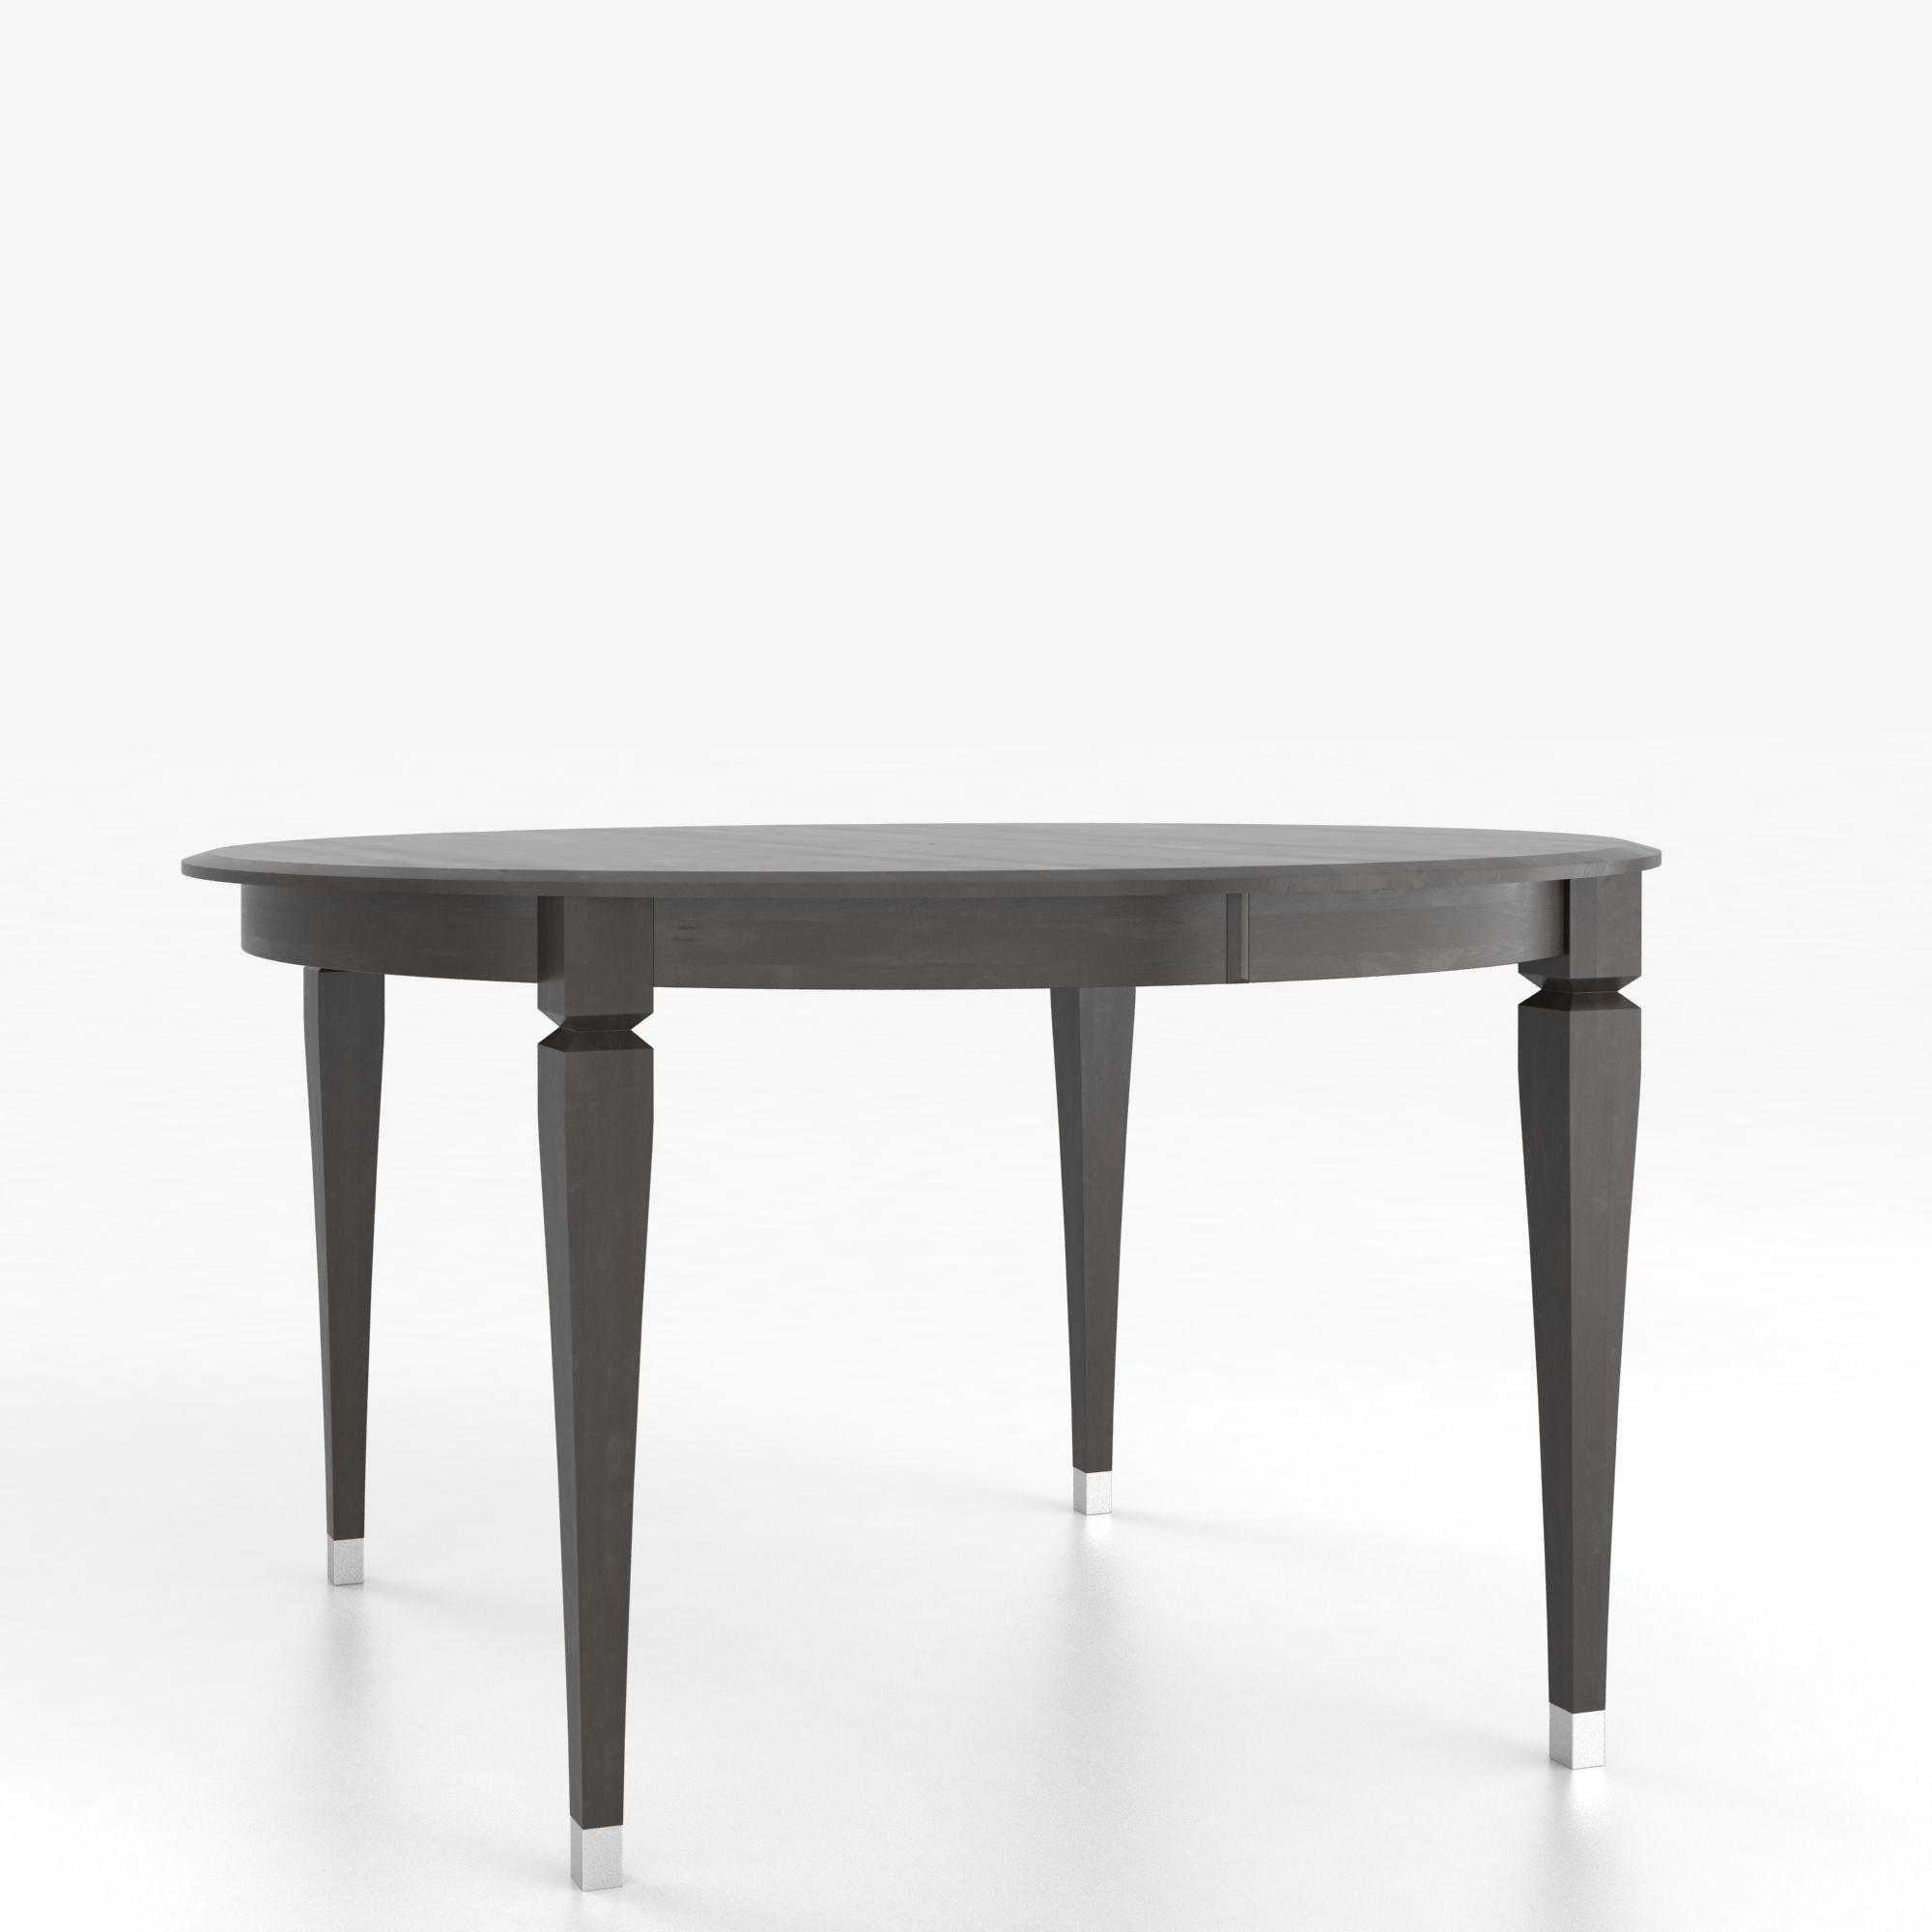 Merveilleux Custom Dining Counter Height Tables Customizable Round Counter Height Table  With Legs By Canadel